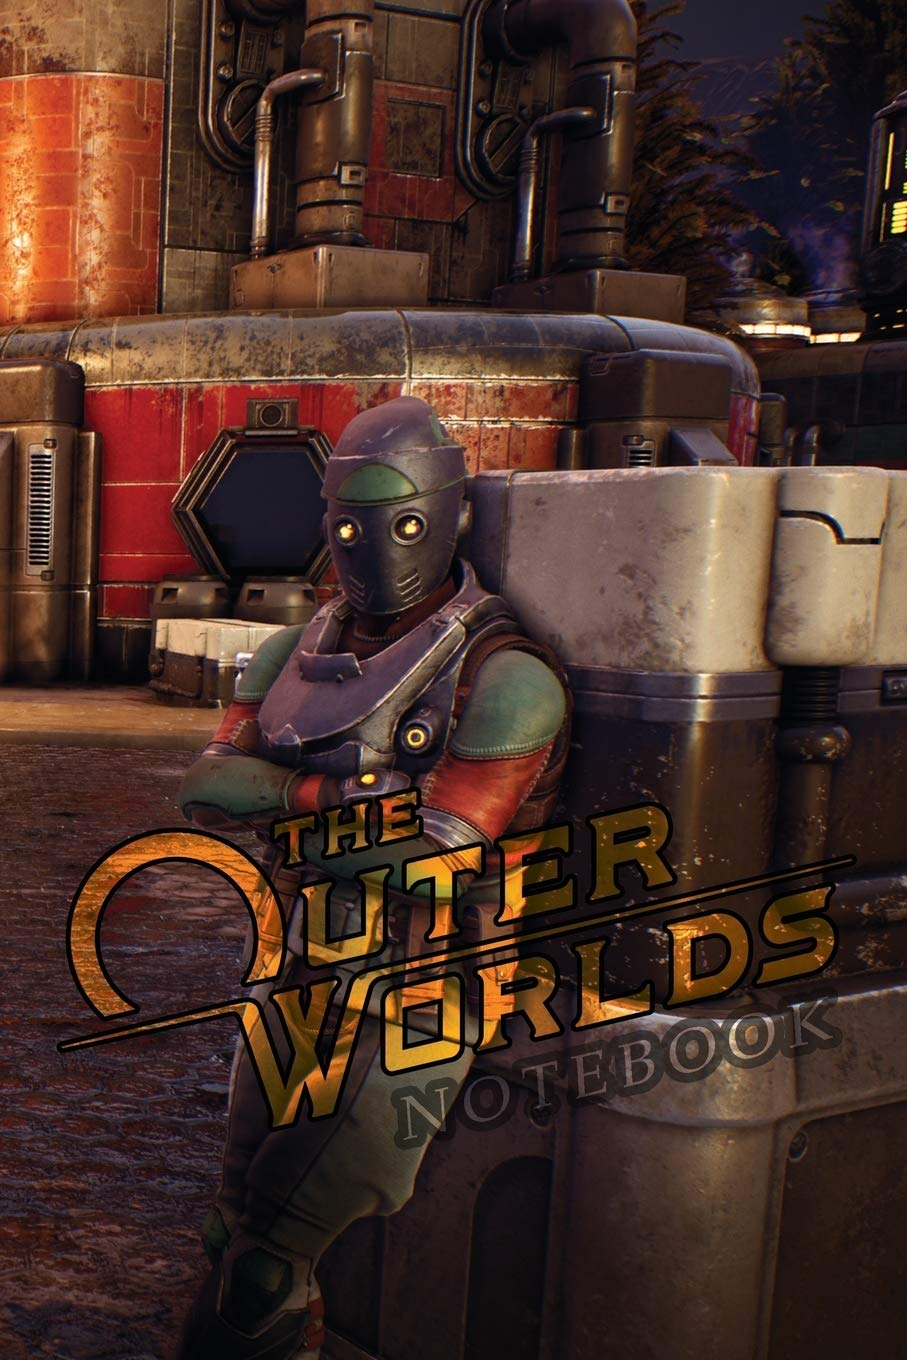 The Outer Worlds Notebook 120 Empty Pages With Lines Size 6 X 9 Amazon Co Uk Books Crazy Books